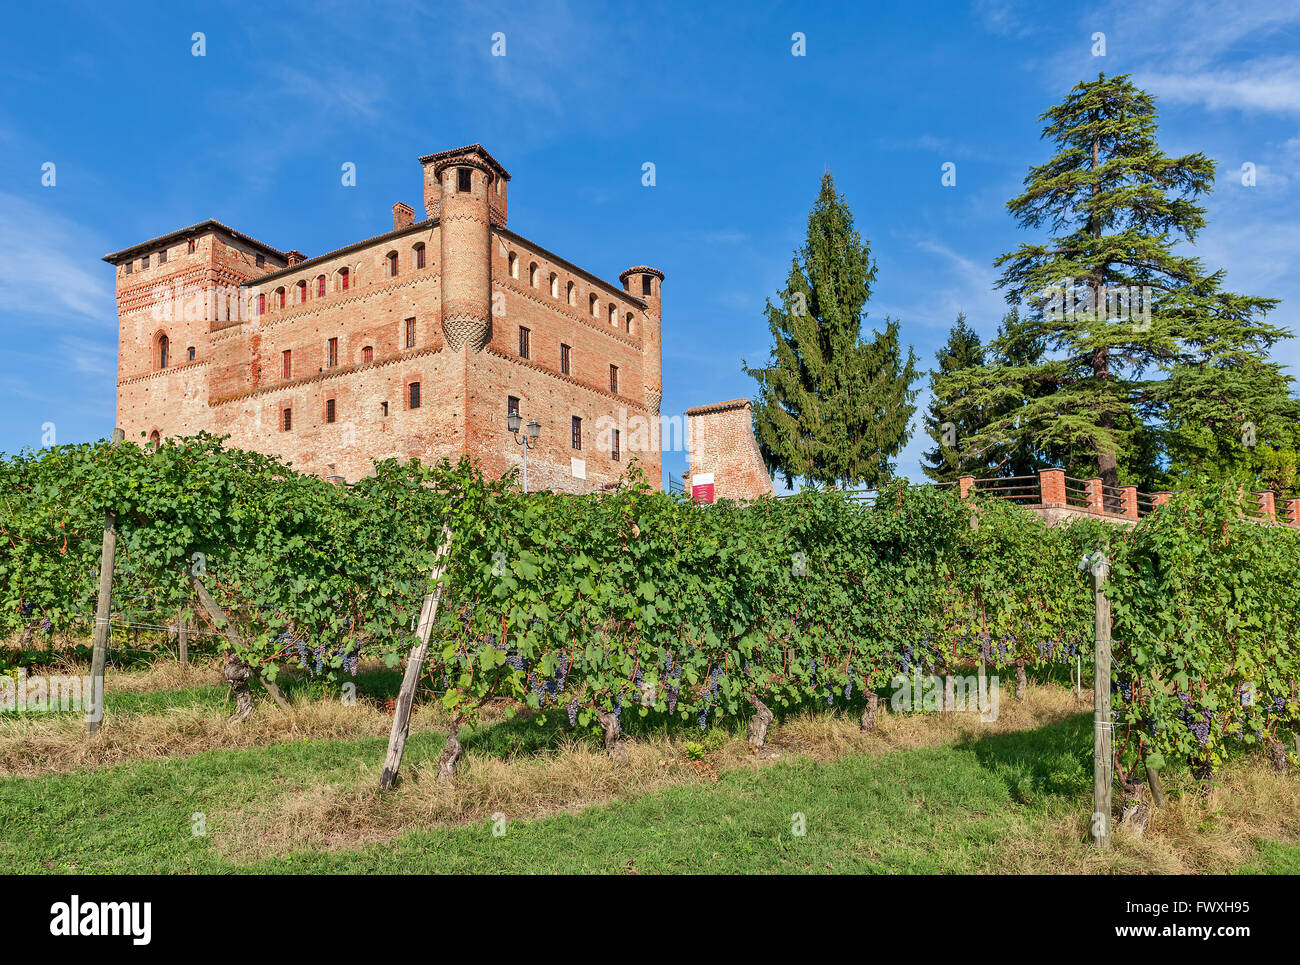 Old medieval castle and green vineyards in Piedmont